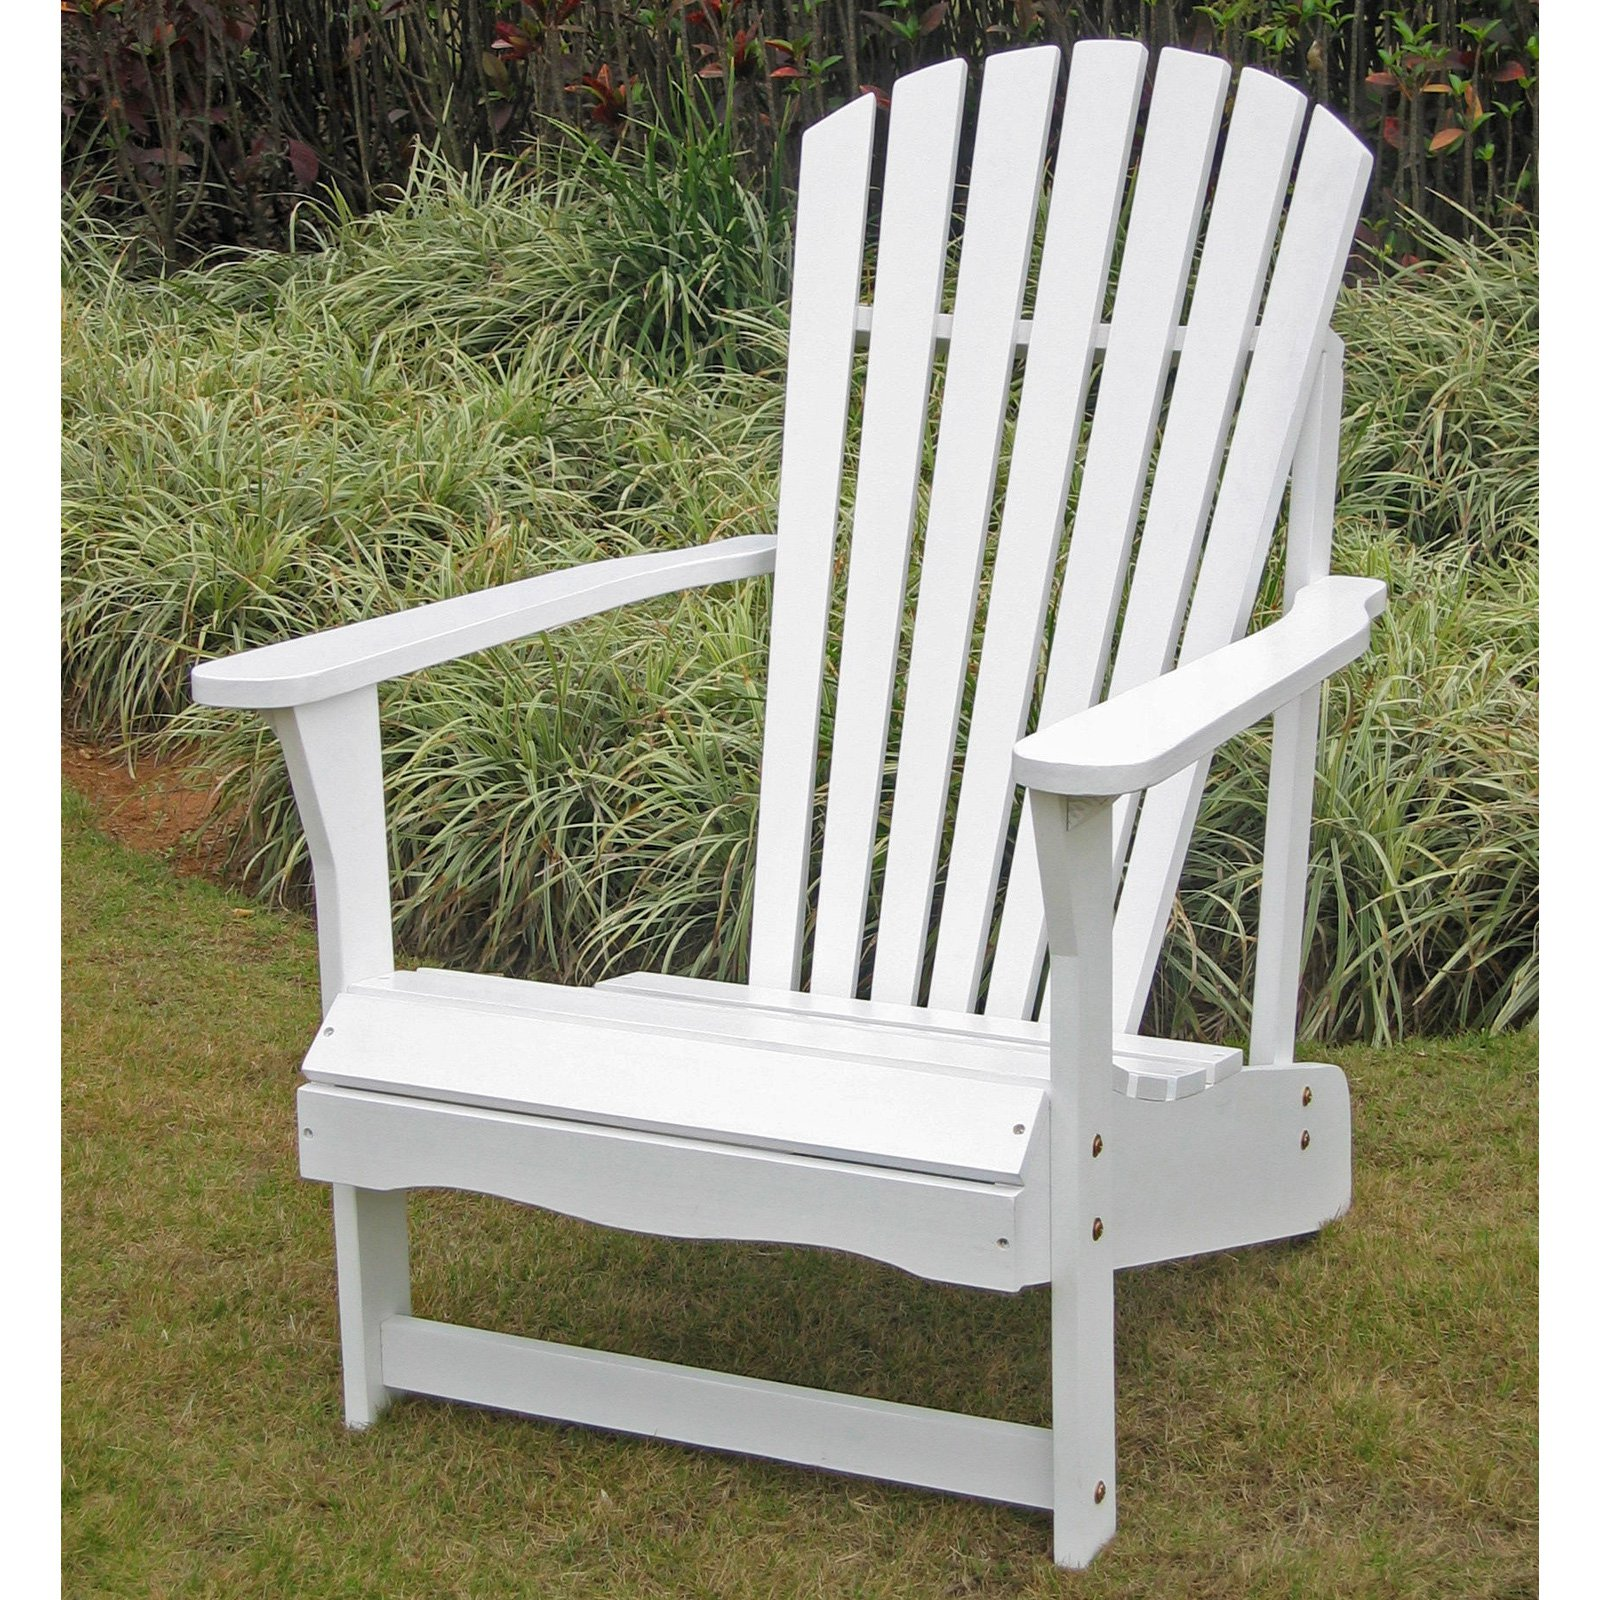 International Concepts Adirondack Chair, White by International Concepts